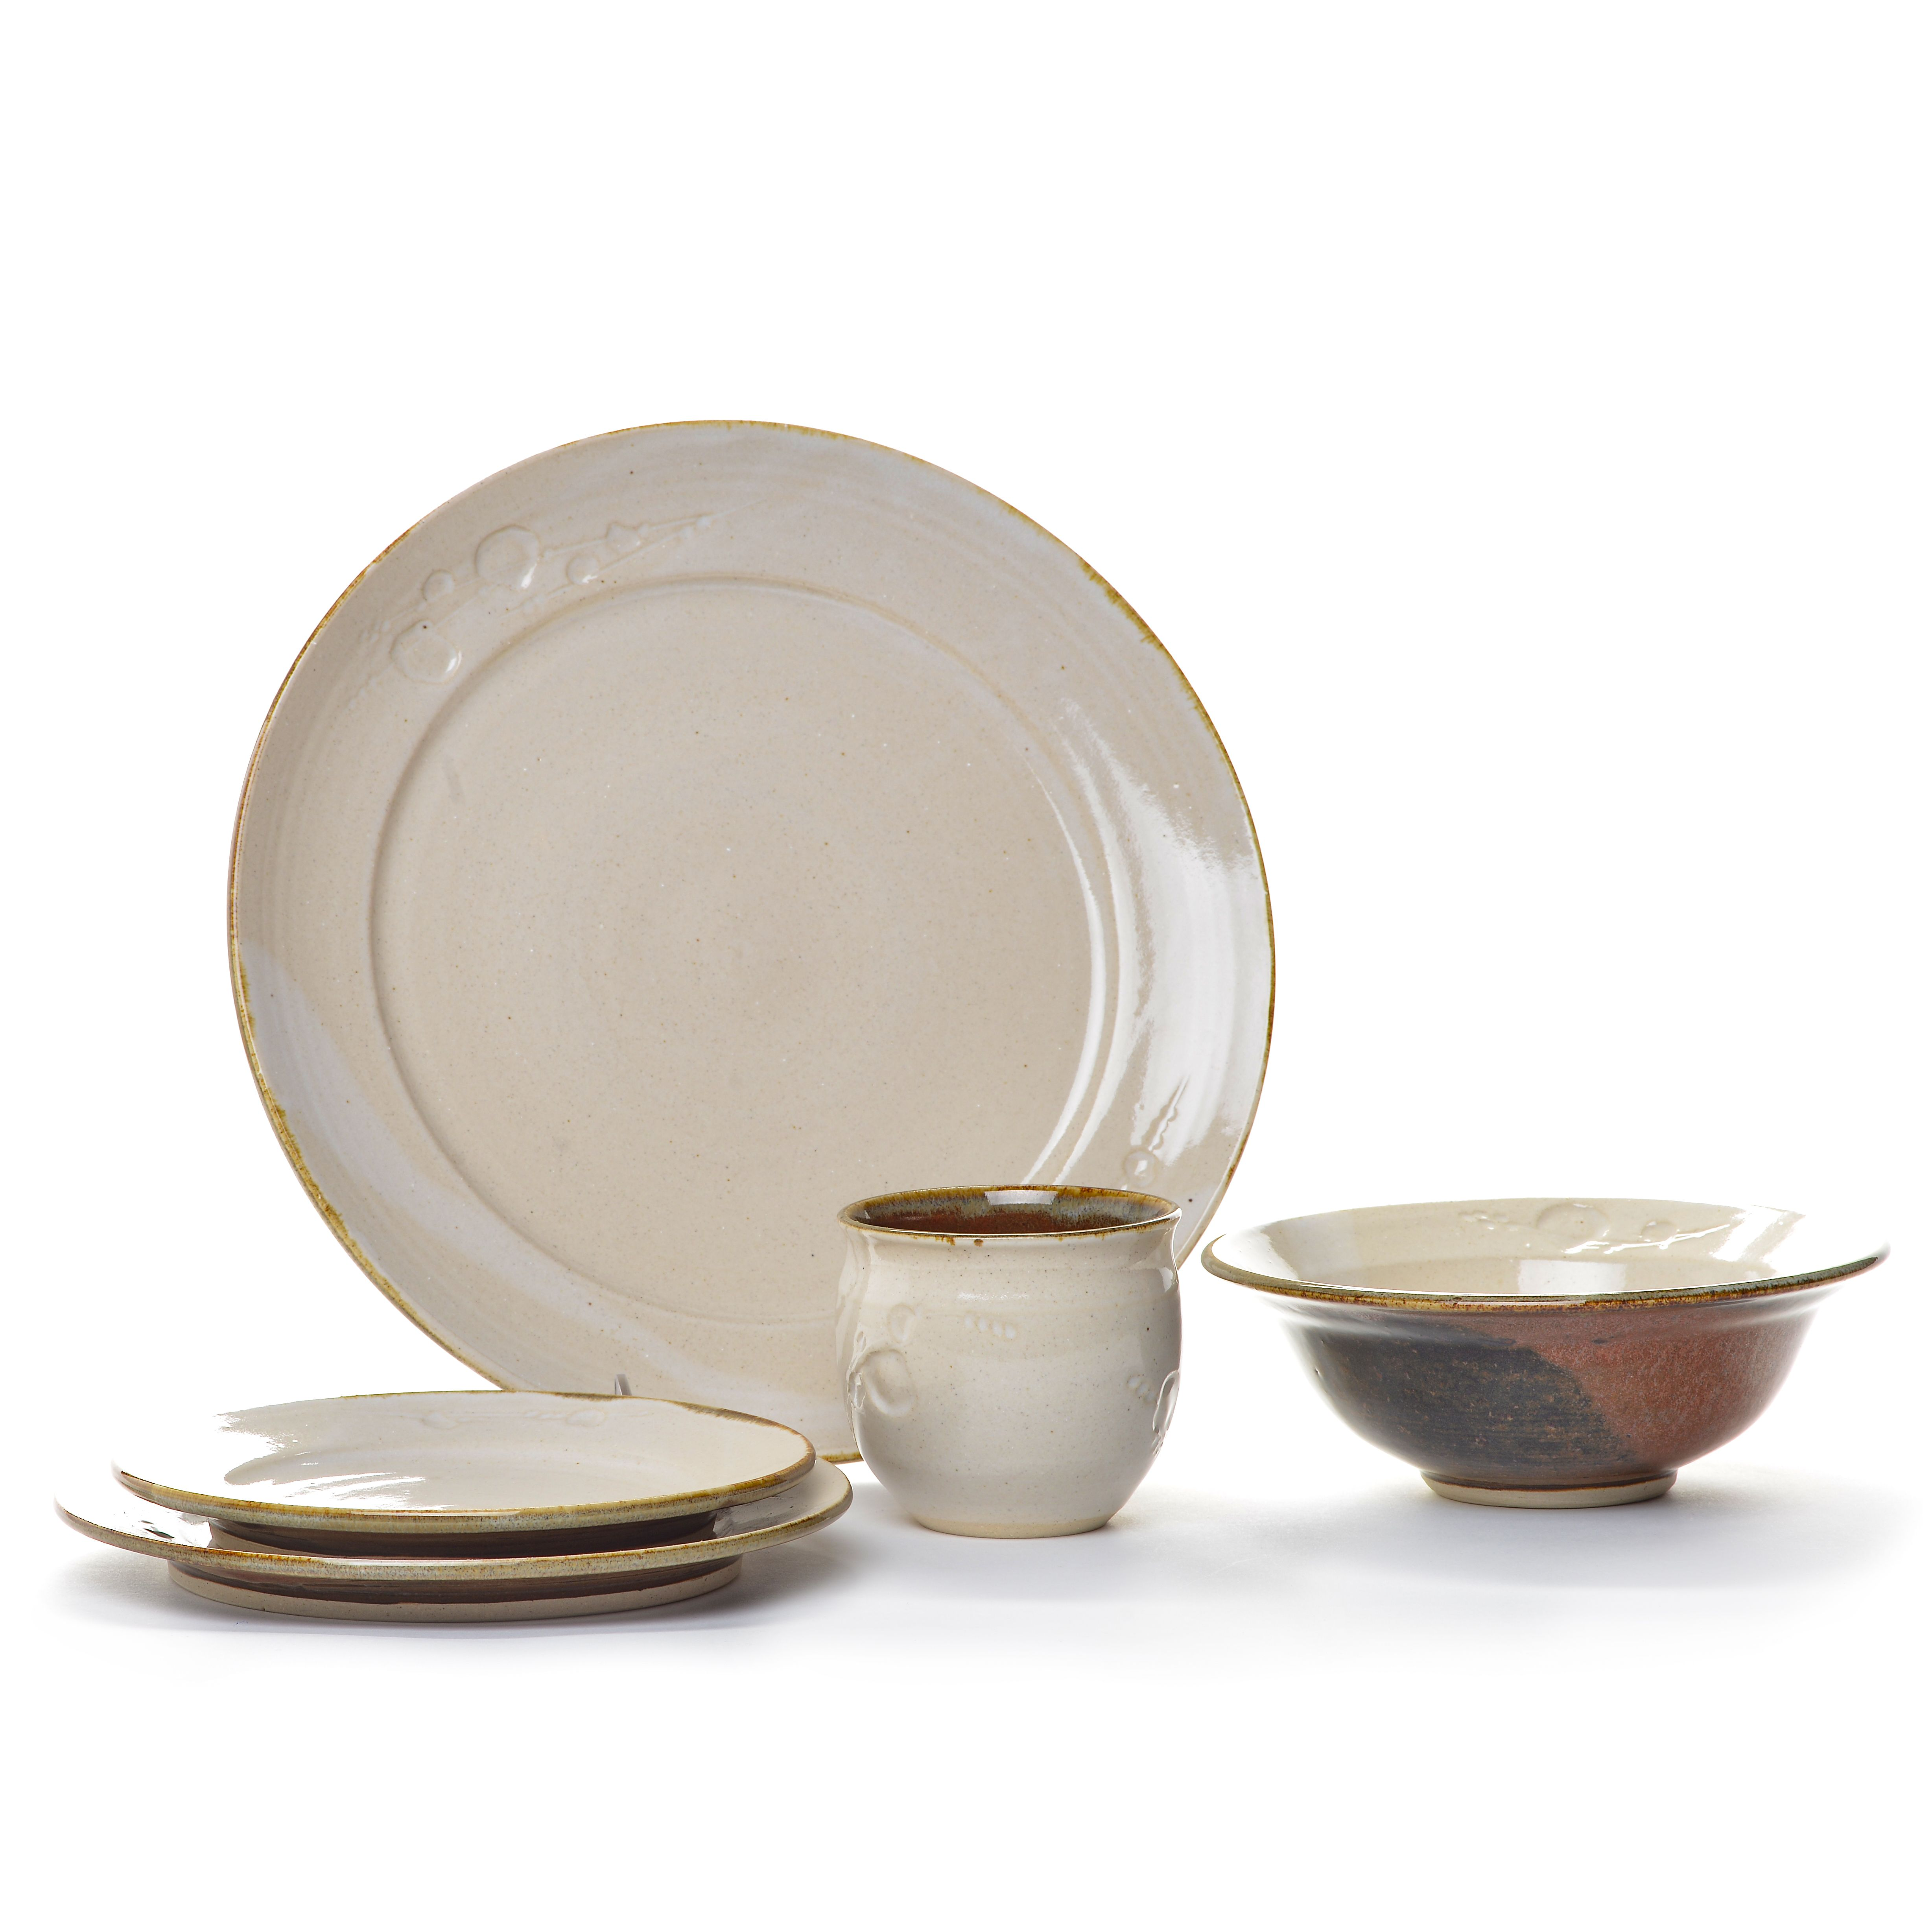 Table For One Place Setting In 2020 Place Settings Bowl Plates